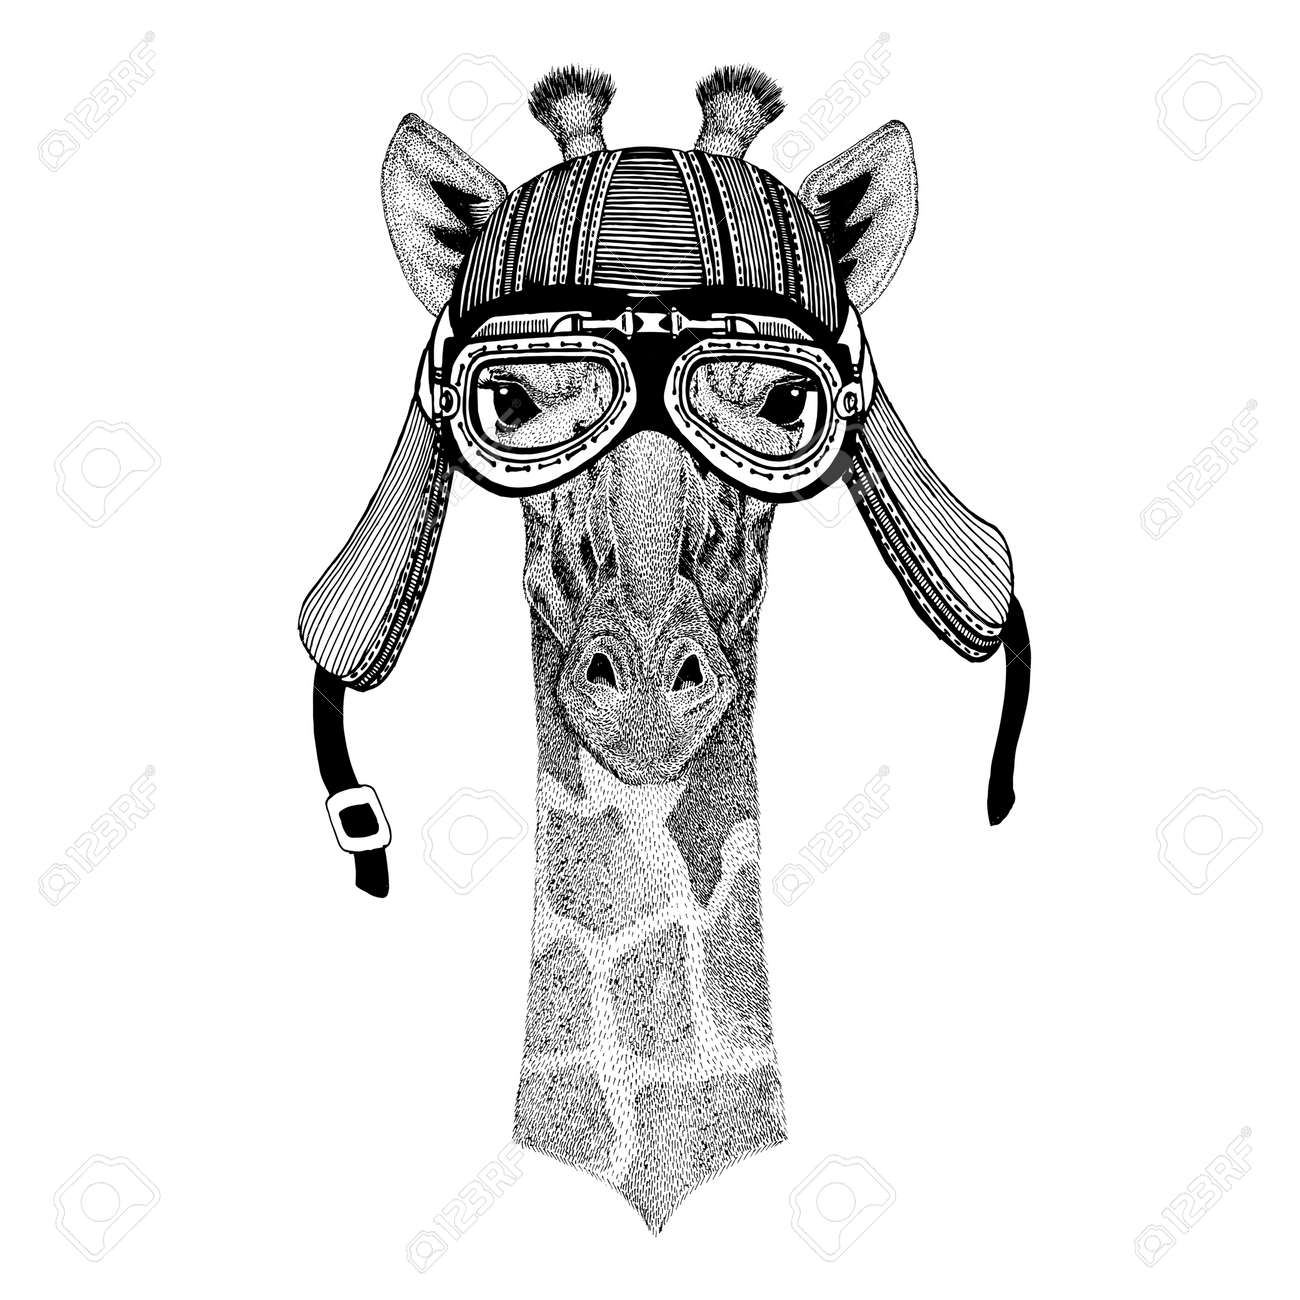 Camelopard, giraffe Hand drawn image of animal wearing motorcycle helmet for t-shirt, tattoo, emblem, badge, logo, patch - 76460748